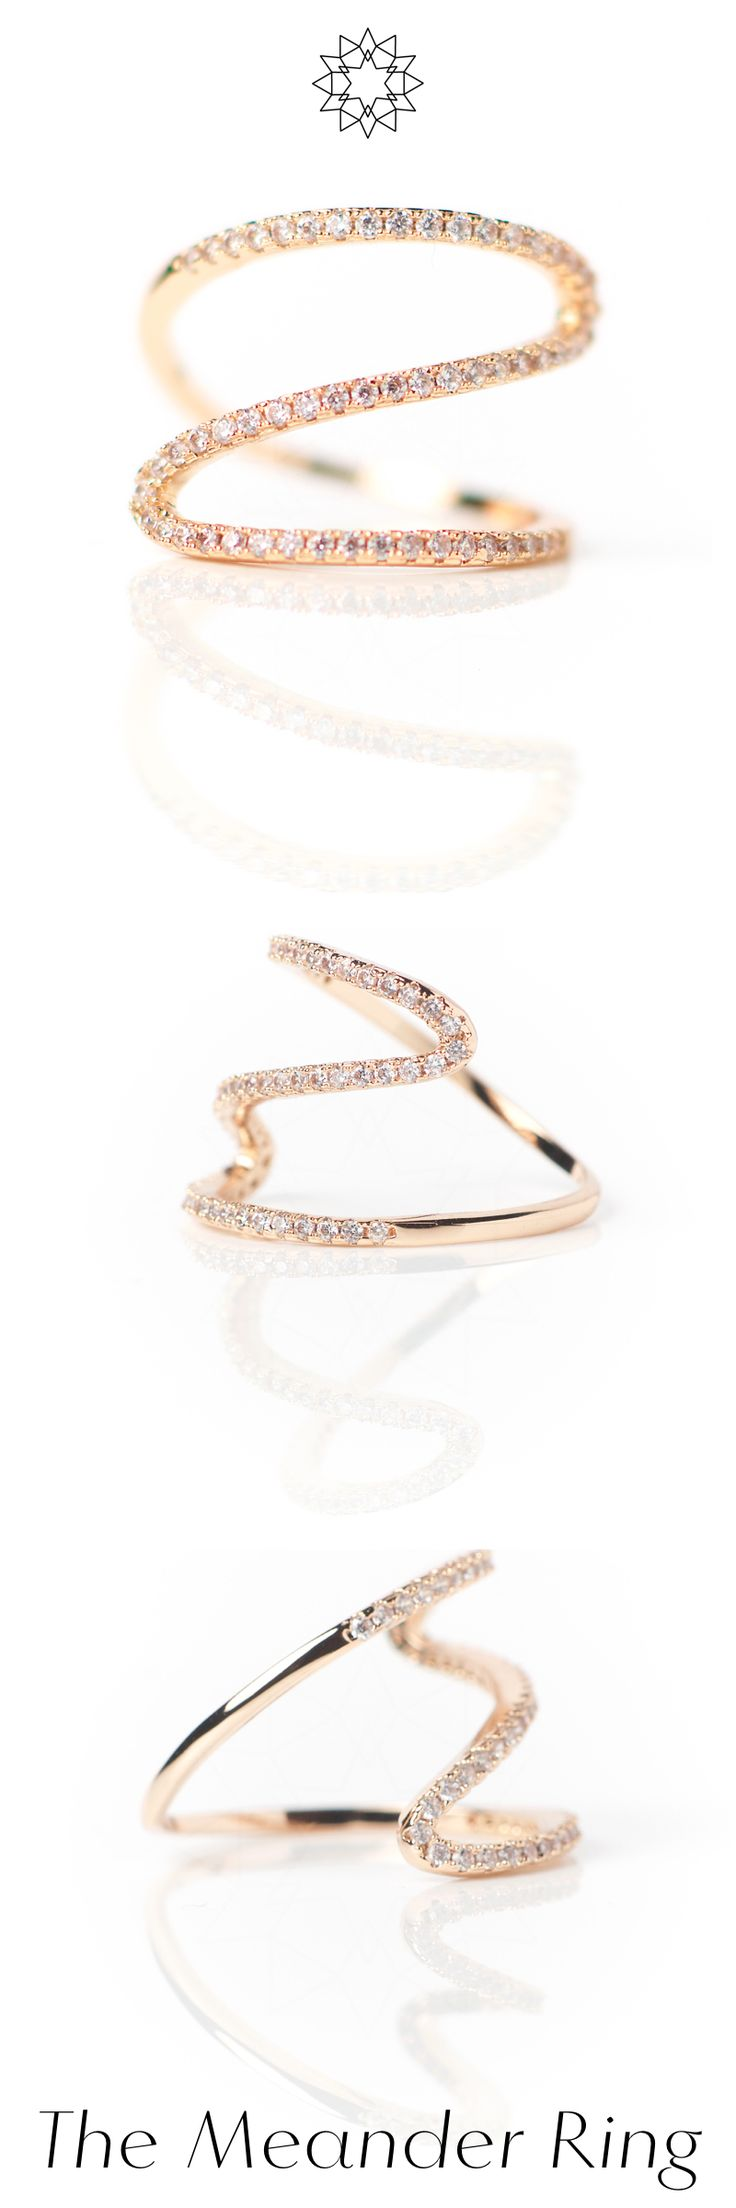 The Meander Ring is double-plated with 18k rose gold and sprinkled with a string of zirconia crystals. This simple minimalist ring design is reminiscent of a fluid asymmetric form and is inspired by the delicate beauty of water in nature.  Read the story of the Meander ring at https://houseoftreasure.eu/products/meander